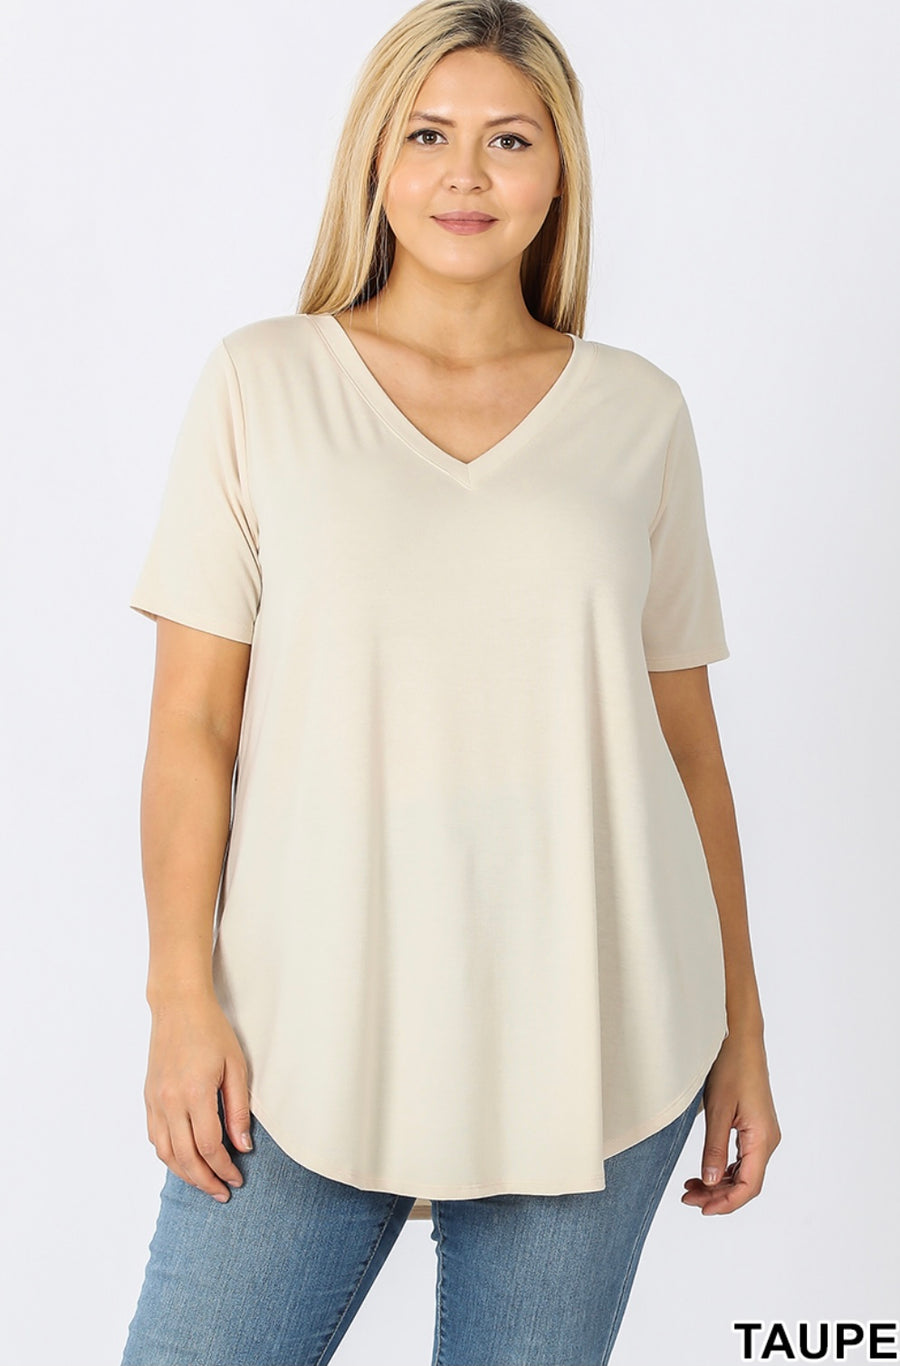 Oats & Honey V-Neck Tee